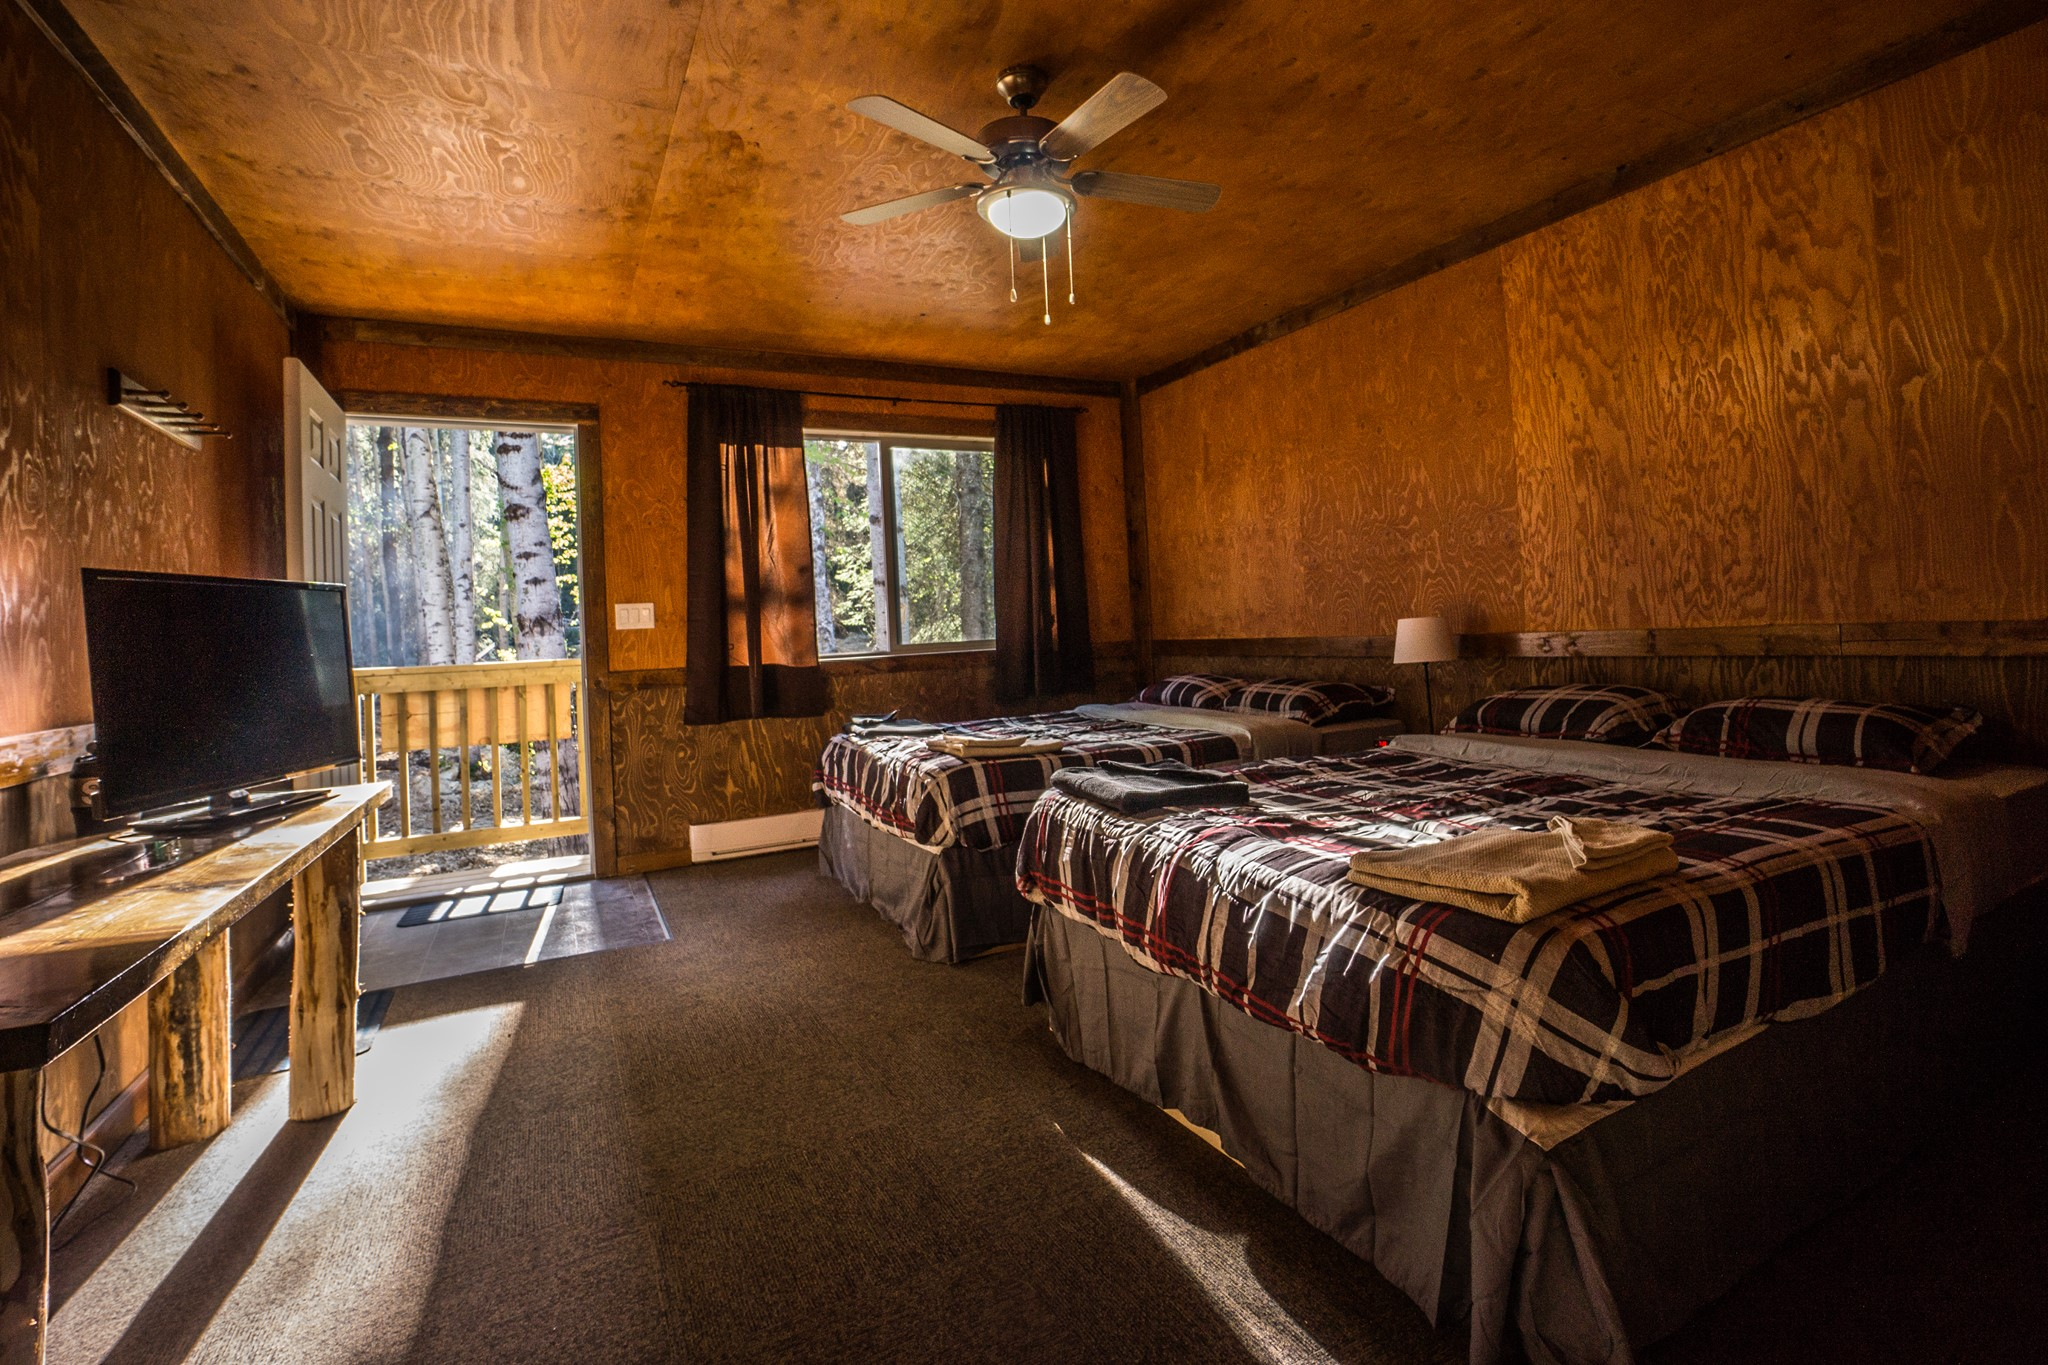 Interior of one of the cabins